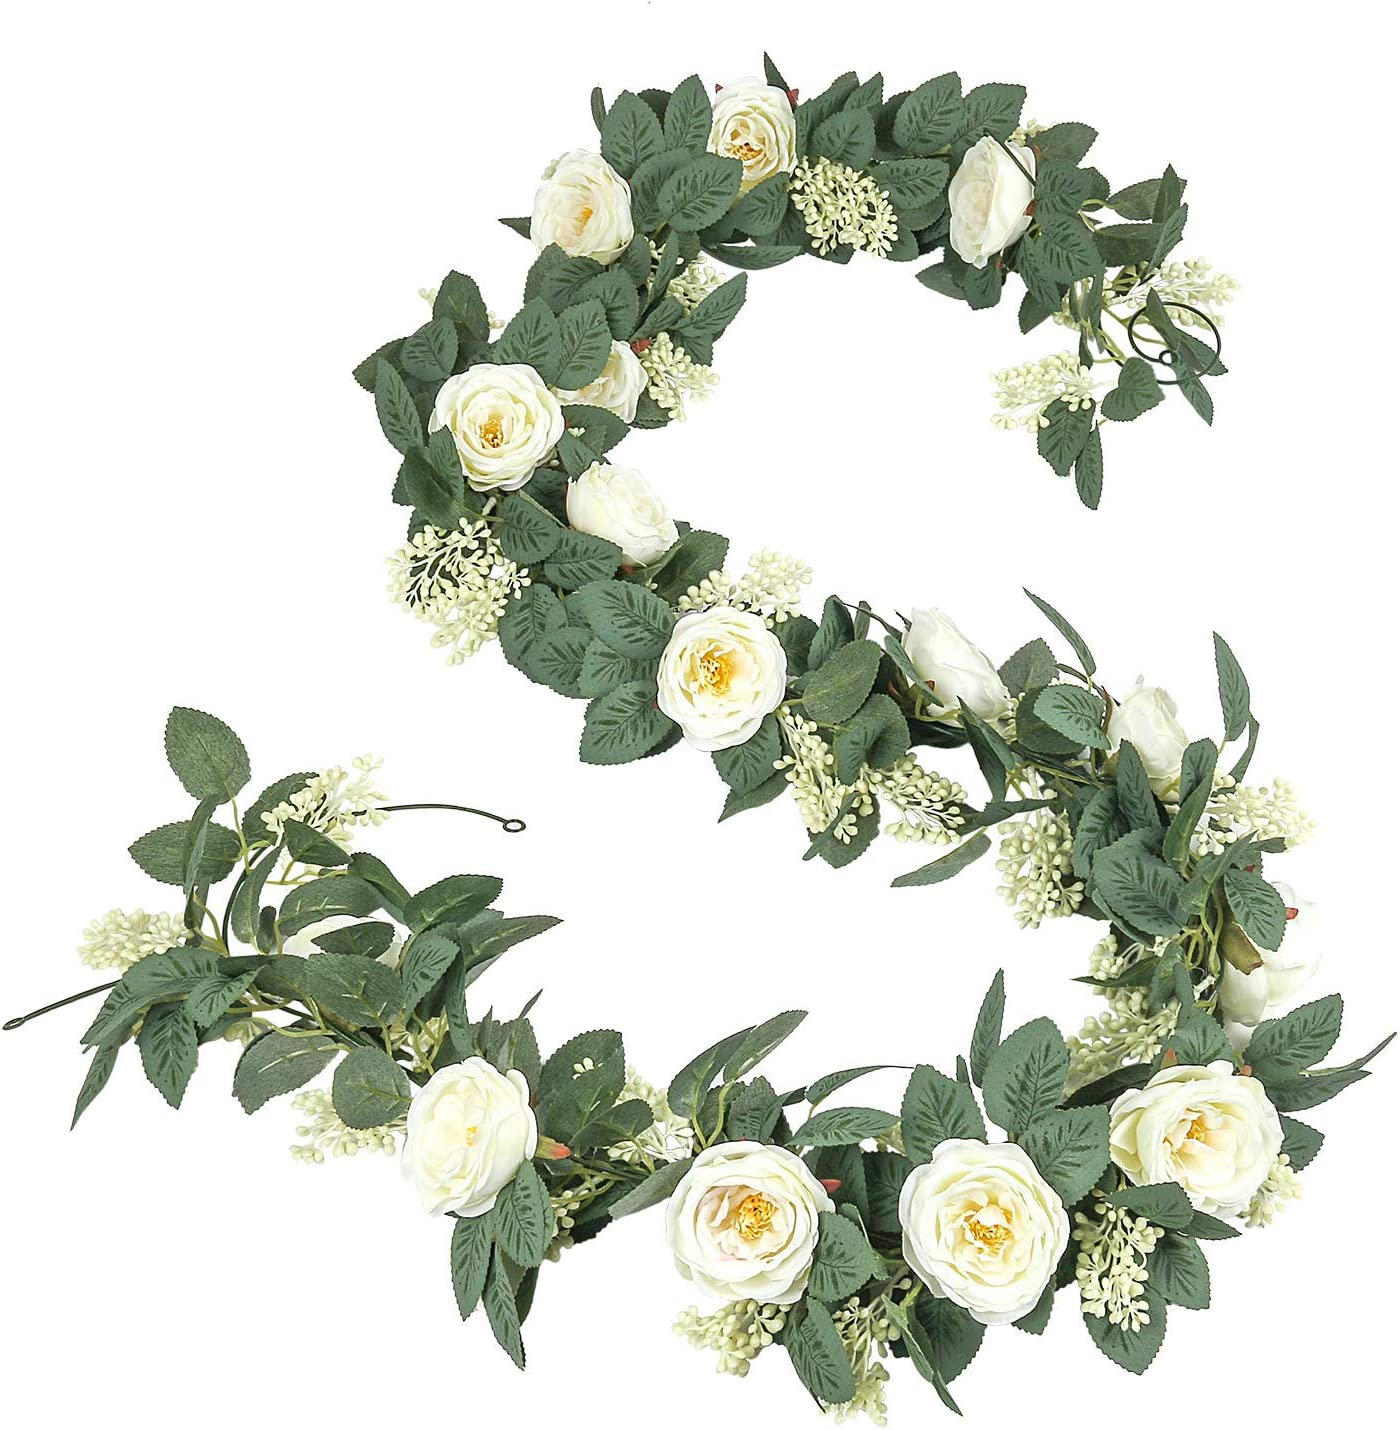 U'Artlines 2PCS(Total 13Ft) Artificial Rose Vine Garland Hanging Fake Rose Ivy Silk Flowers Greenery Plants for Wedding Backdrop Party Wall Home Decor (2pcs, Cream White)